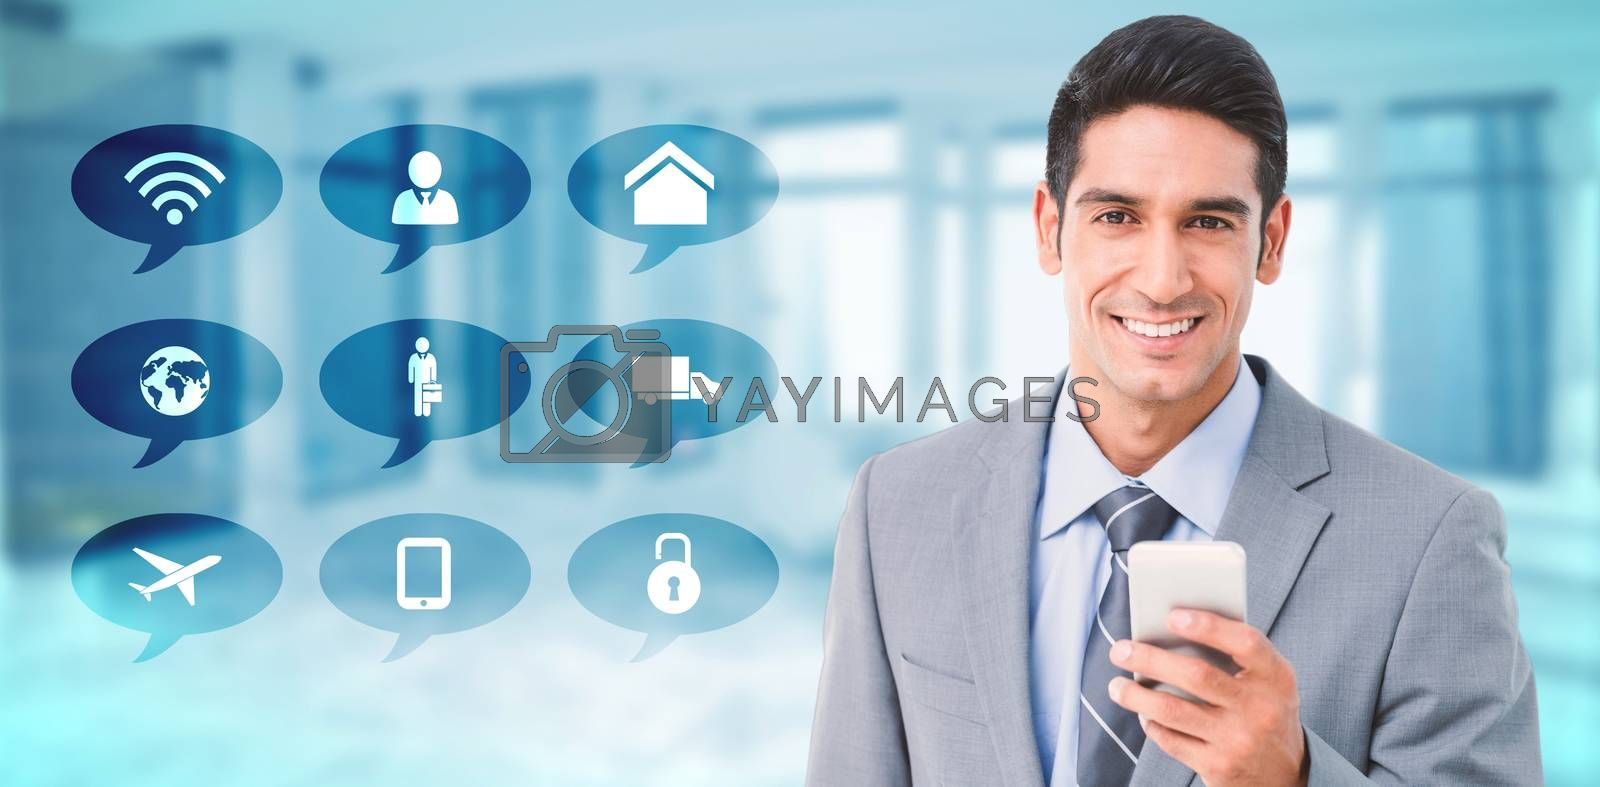 Businessman using mobile phone with colleagues behind against modern room overlooking city